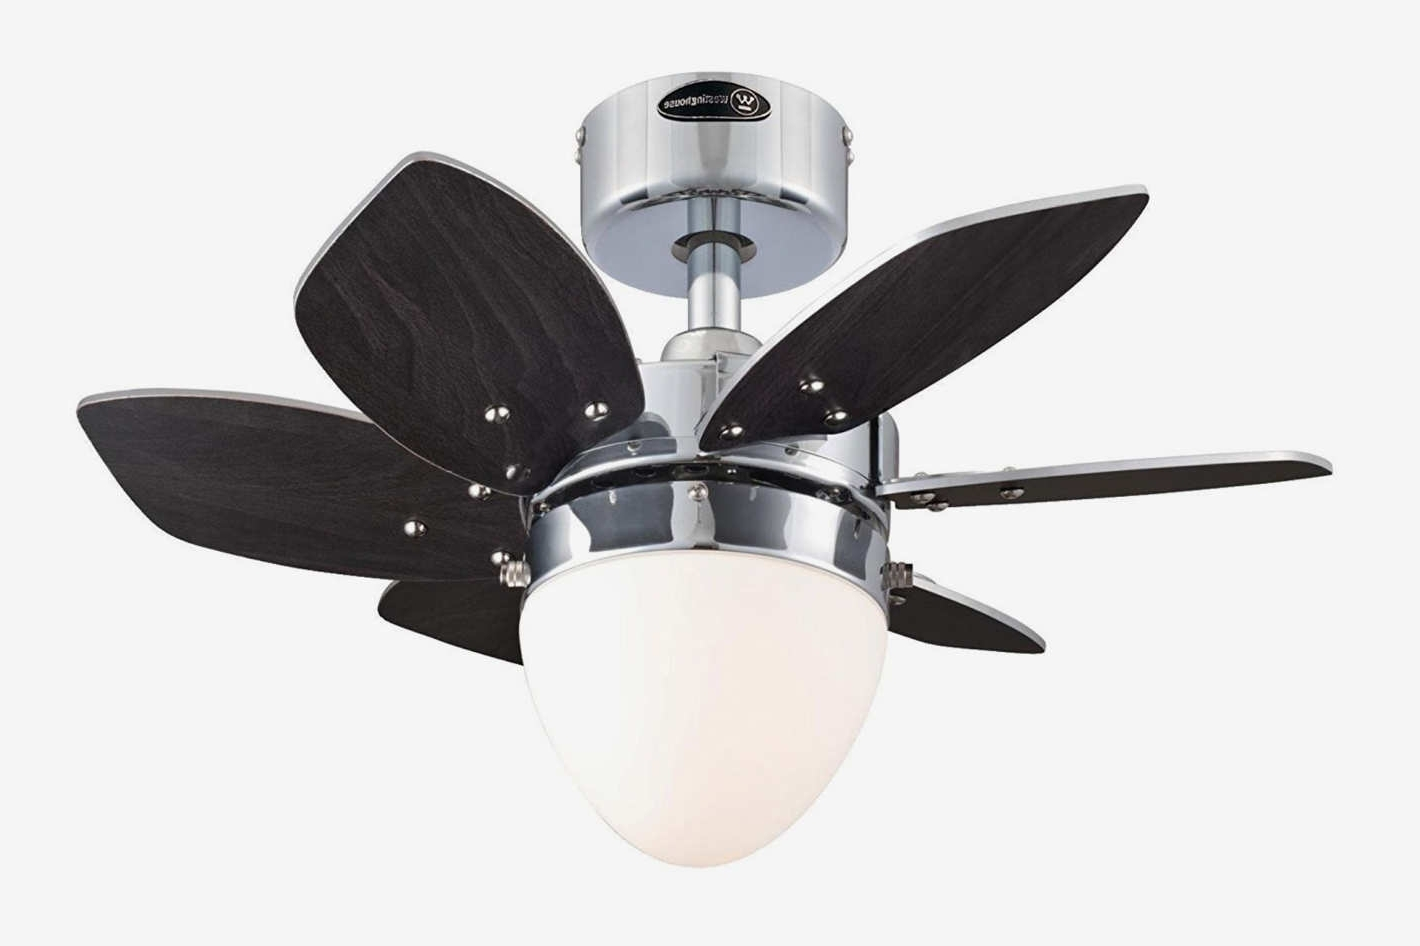 Outdoor Ceiling Fan With Light Under $100 Inside Newest The 9 Best Ceiling Fans On Amazon (View 15 of 20)